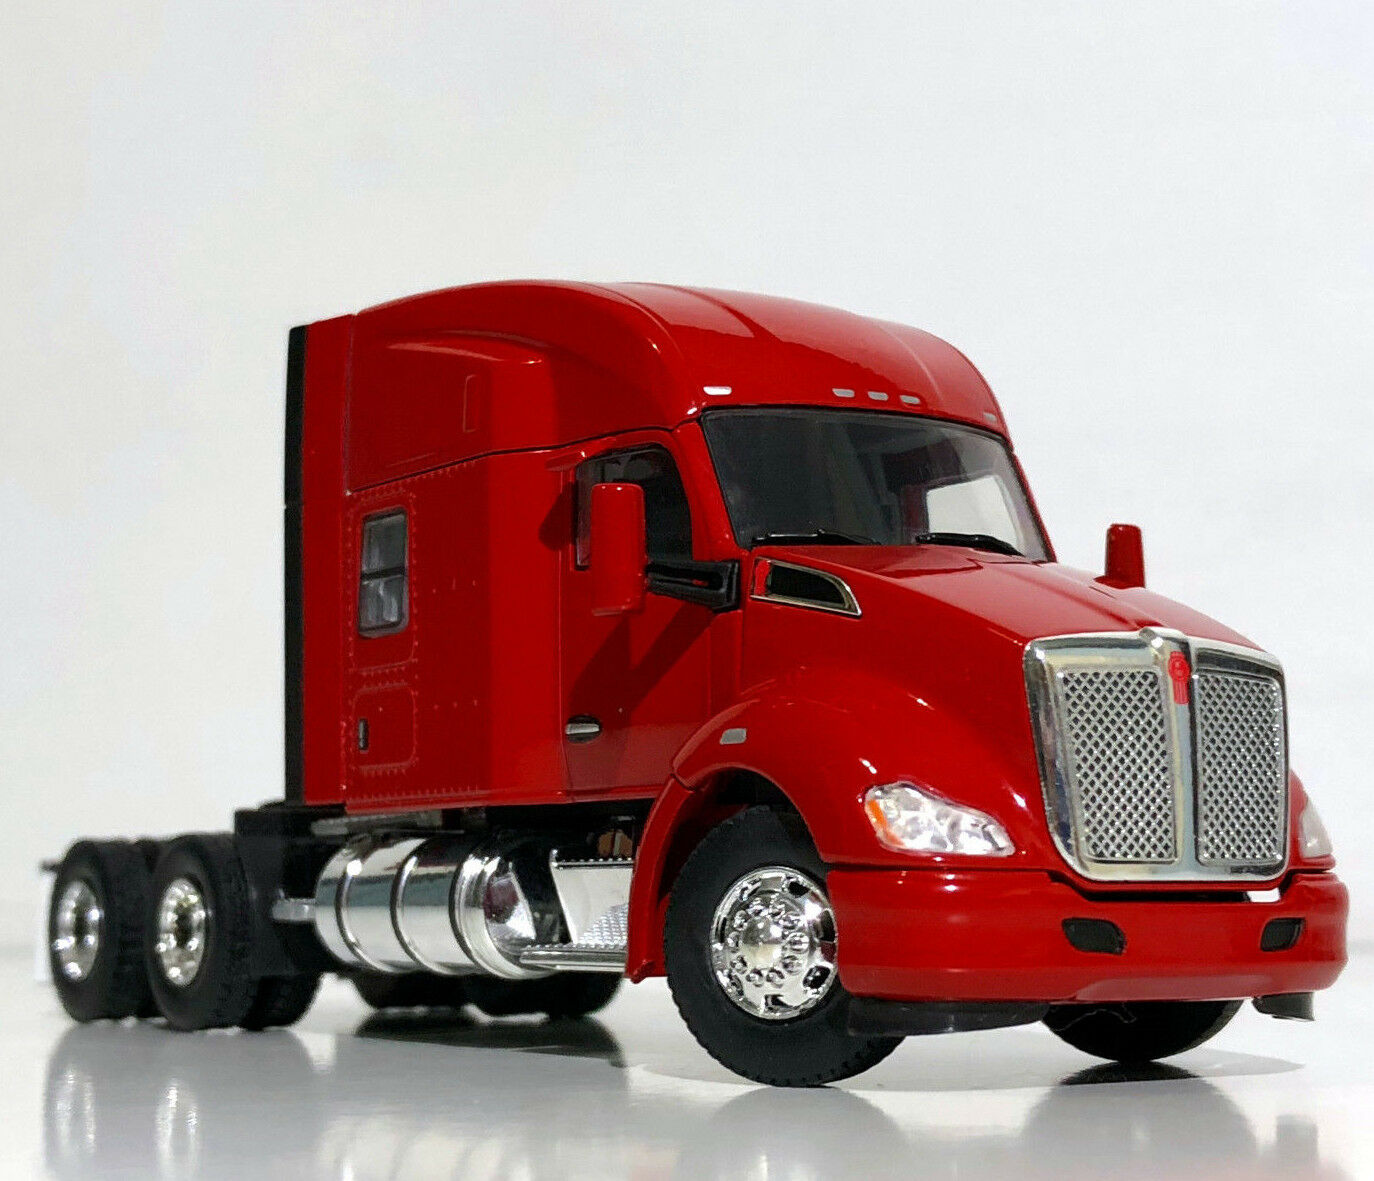 WSI CAMION modelli, Kenworth T680 6x4 rosso, singolo Camion, 1:50